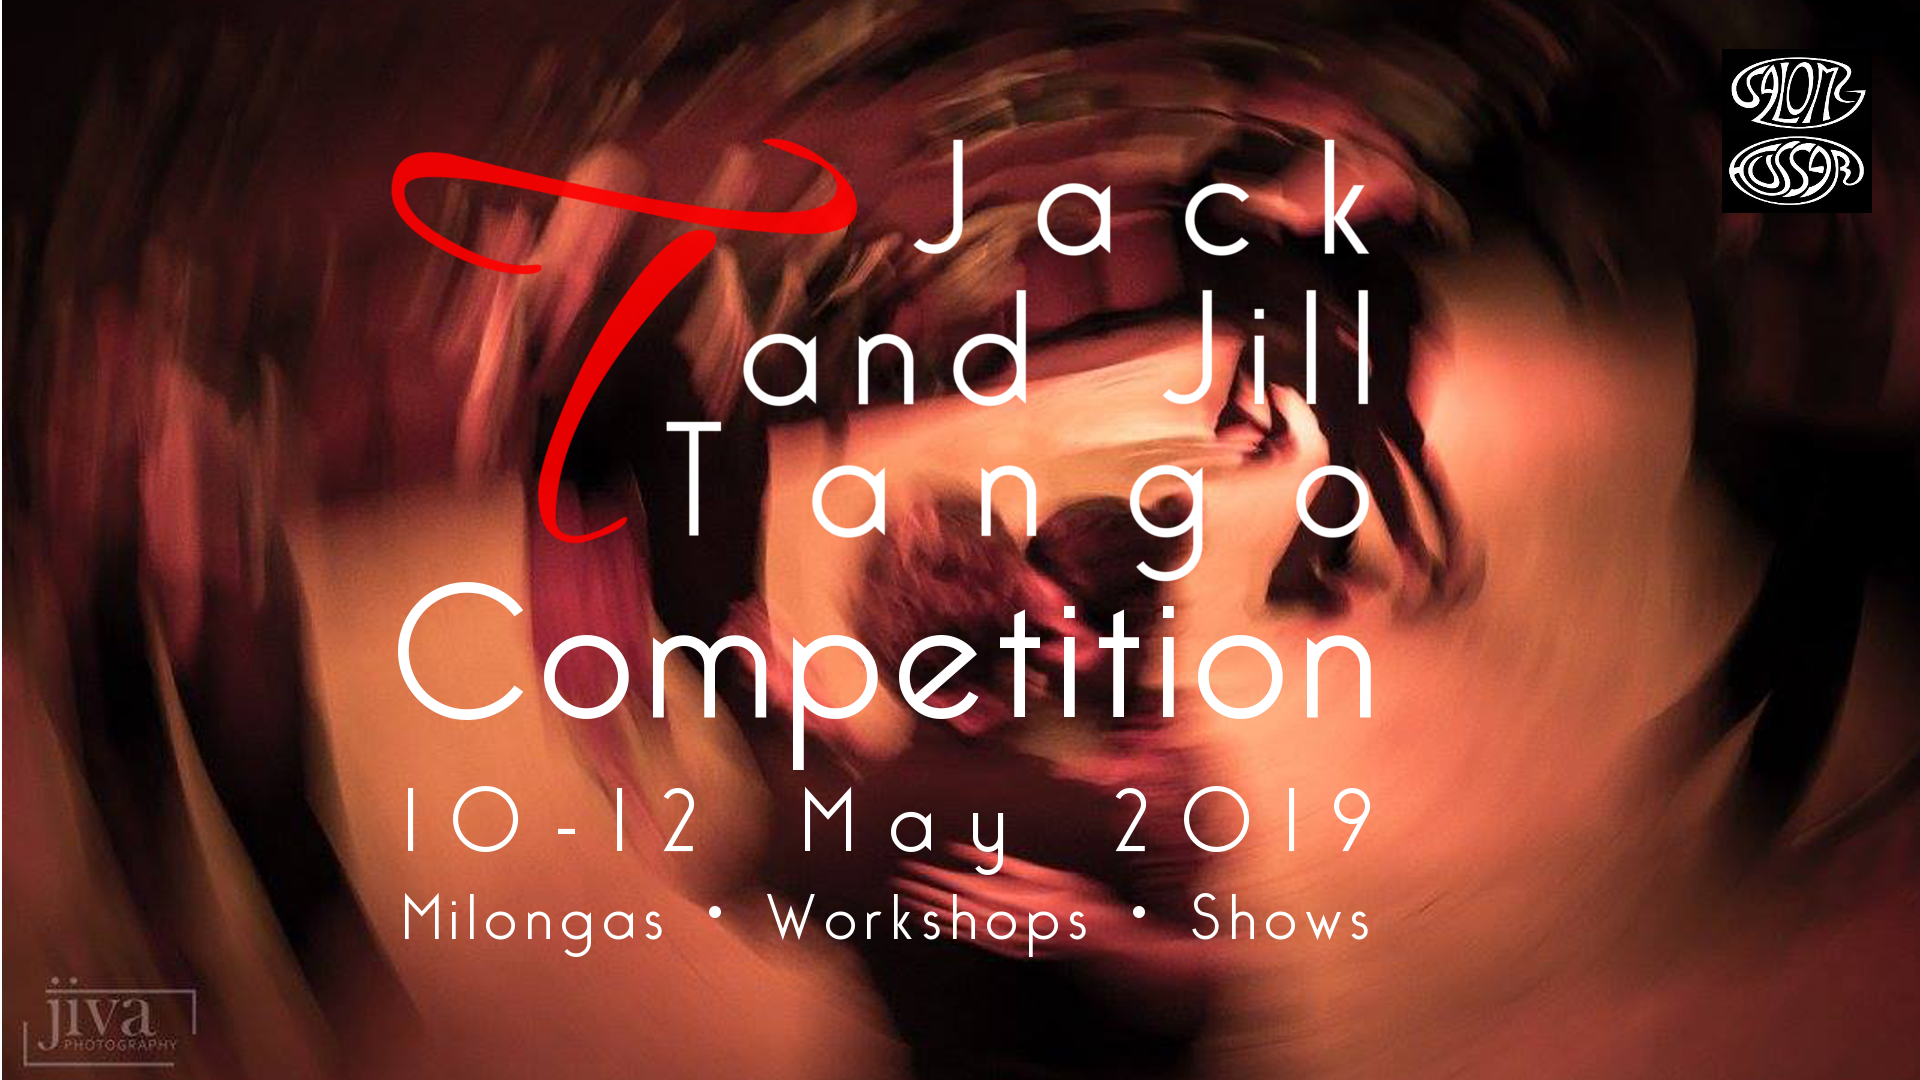 Jack and Jill Tango® Event and Competition - in Budapest from May 10-12.